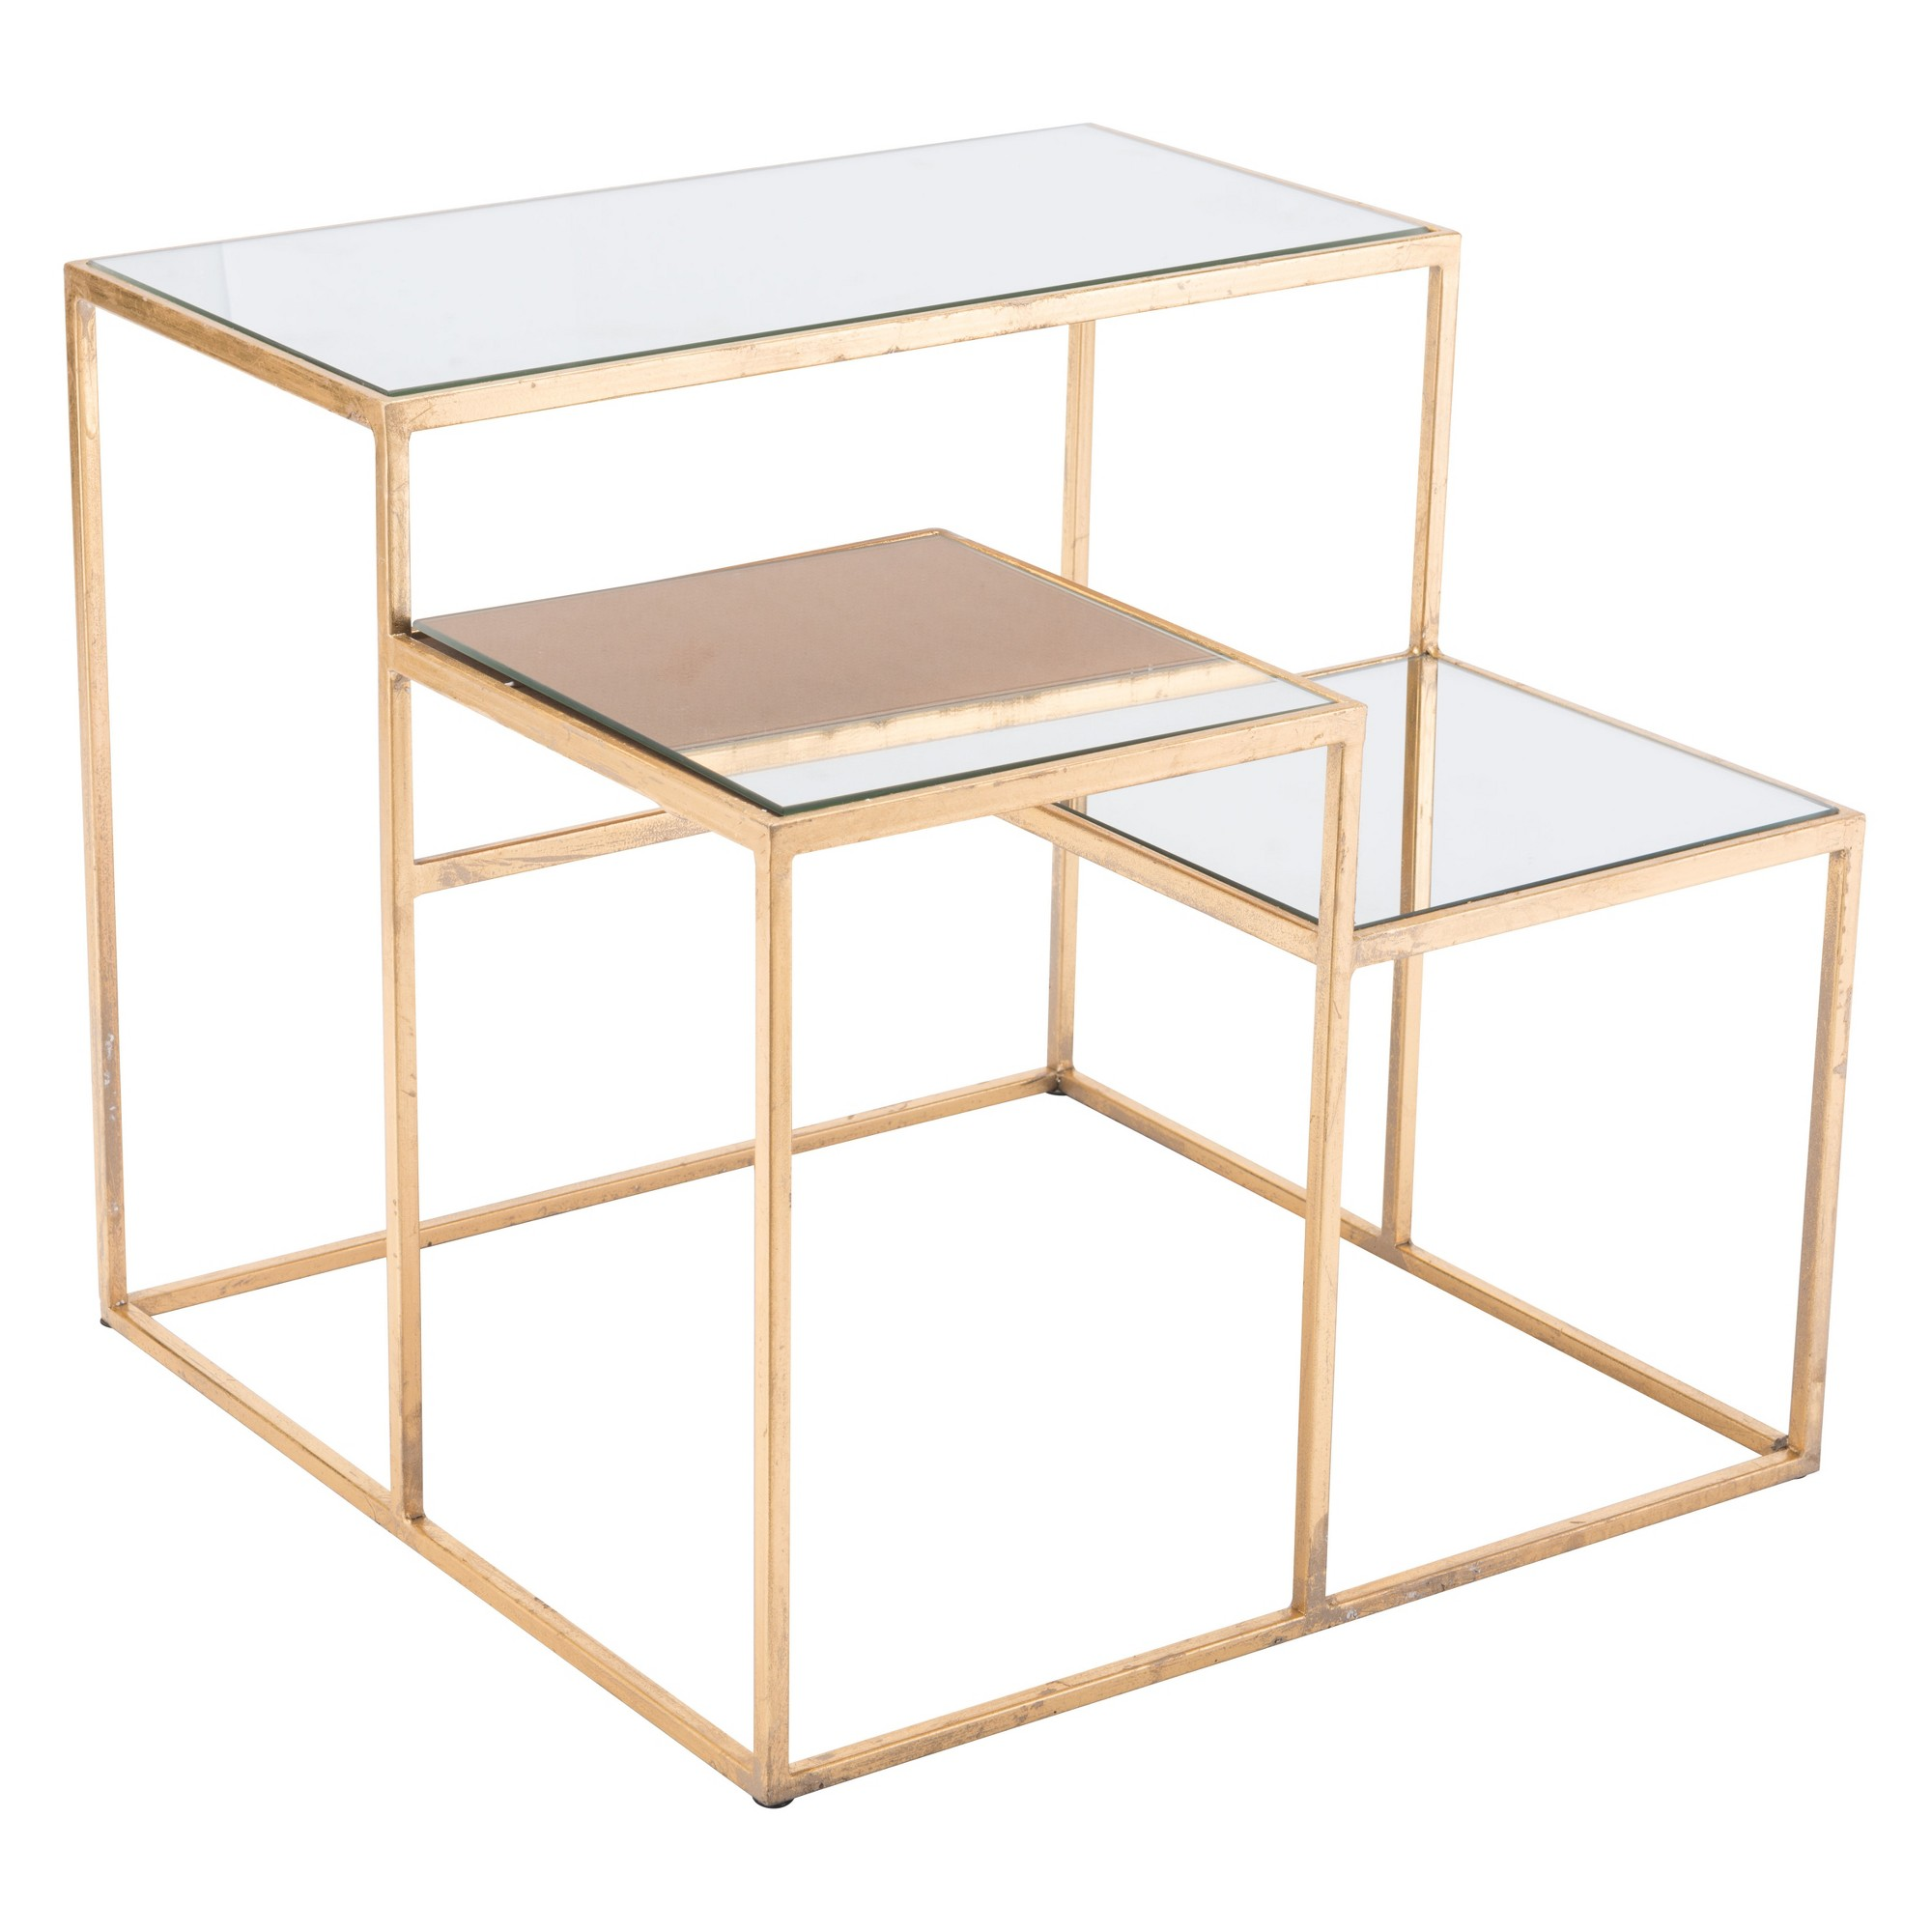 luxe mirror and steel square end table gold home linon galway accent white plastic frame woven pier dining chairs long modern coffee mercer bar cabinet clock nautical style lamps